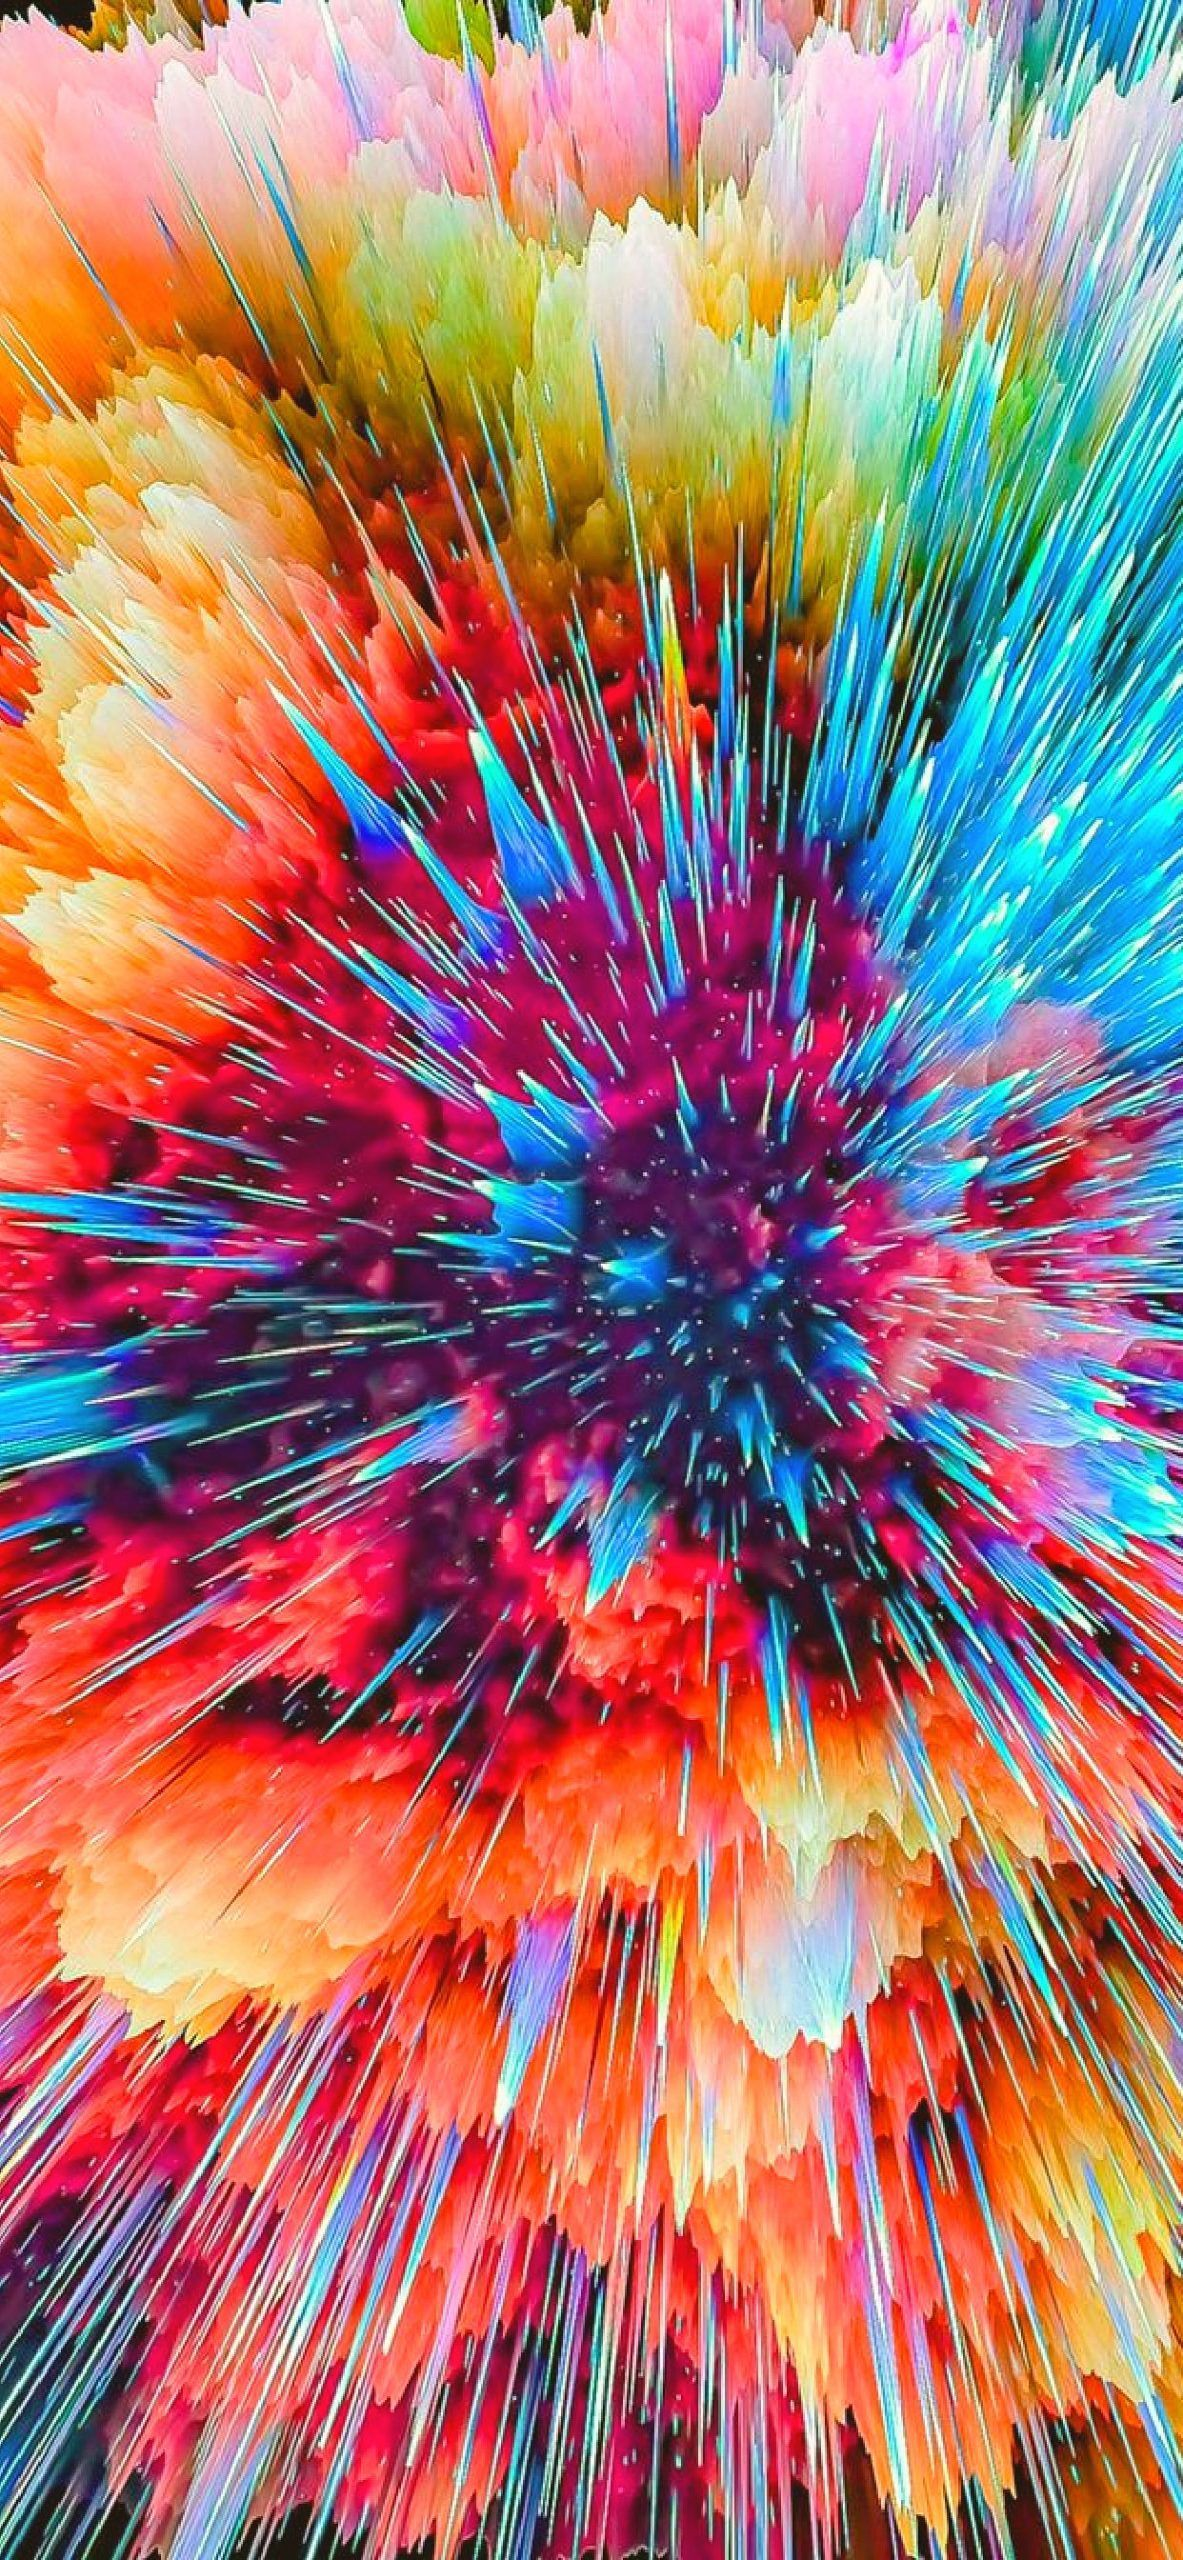 Sony Xperia Lock Screen 4k Abstract Wallpapers Download Traxzee Xperia Wallpaper Abstract Abstract Wallpaper